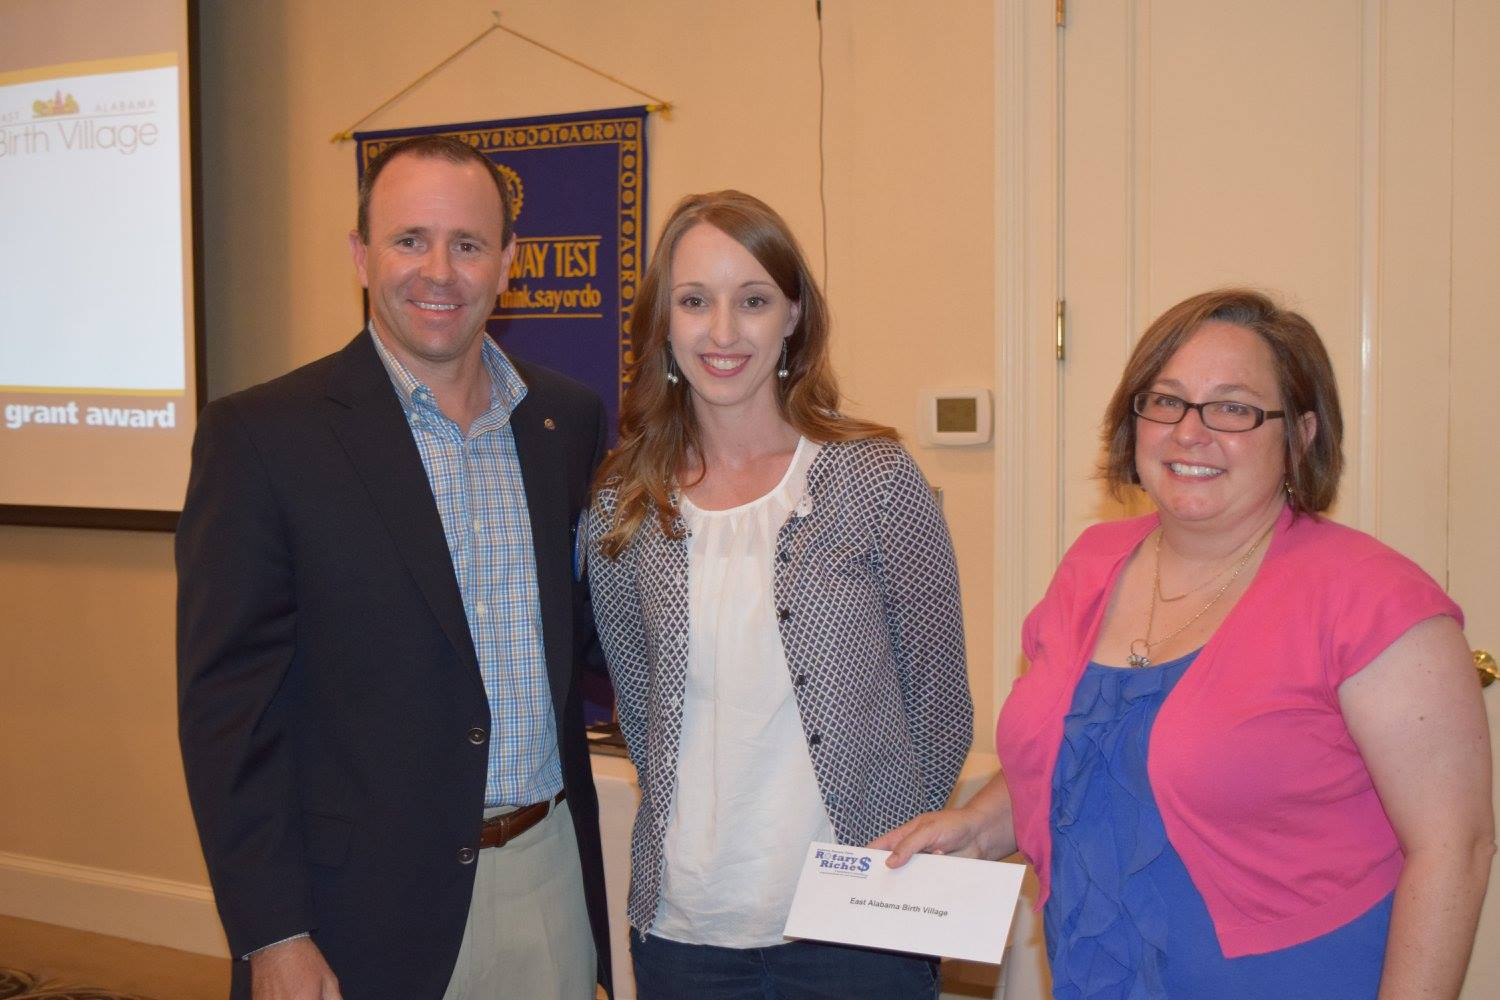 birth village 2016 auburn rotary grants